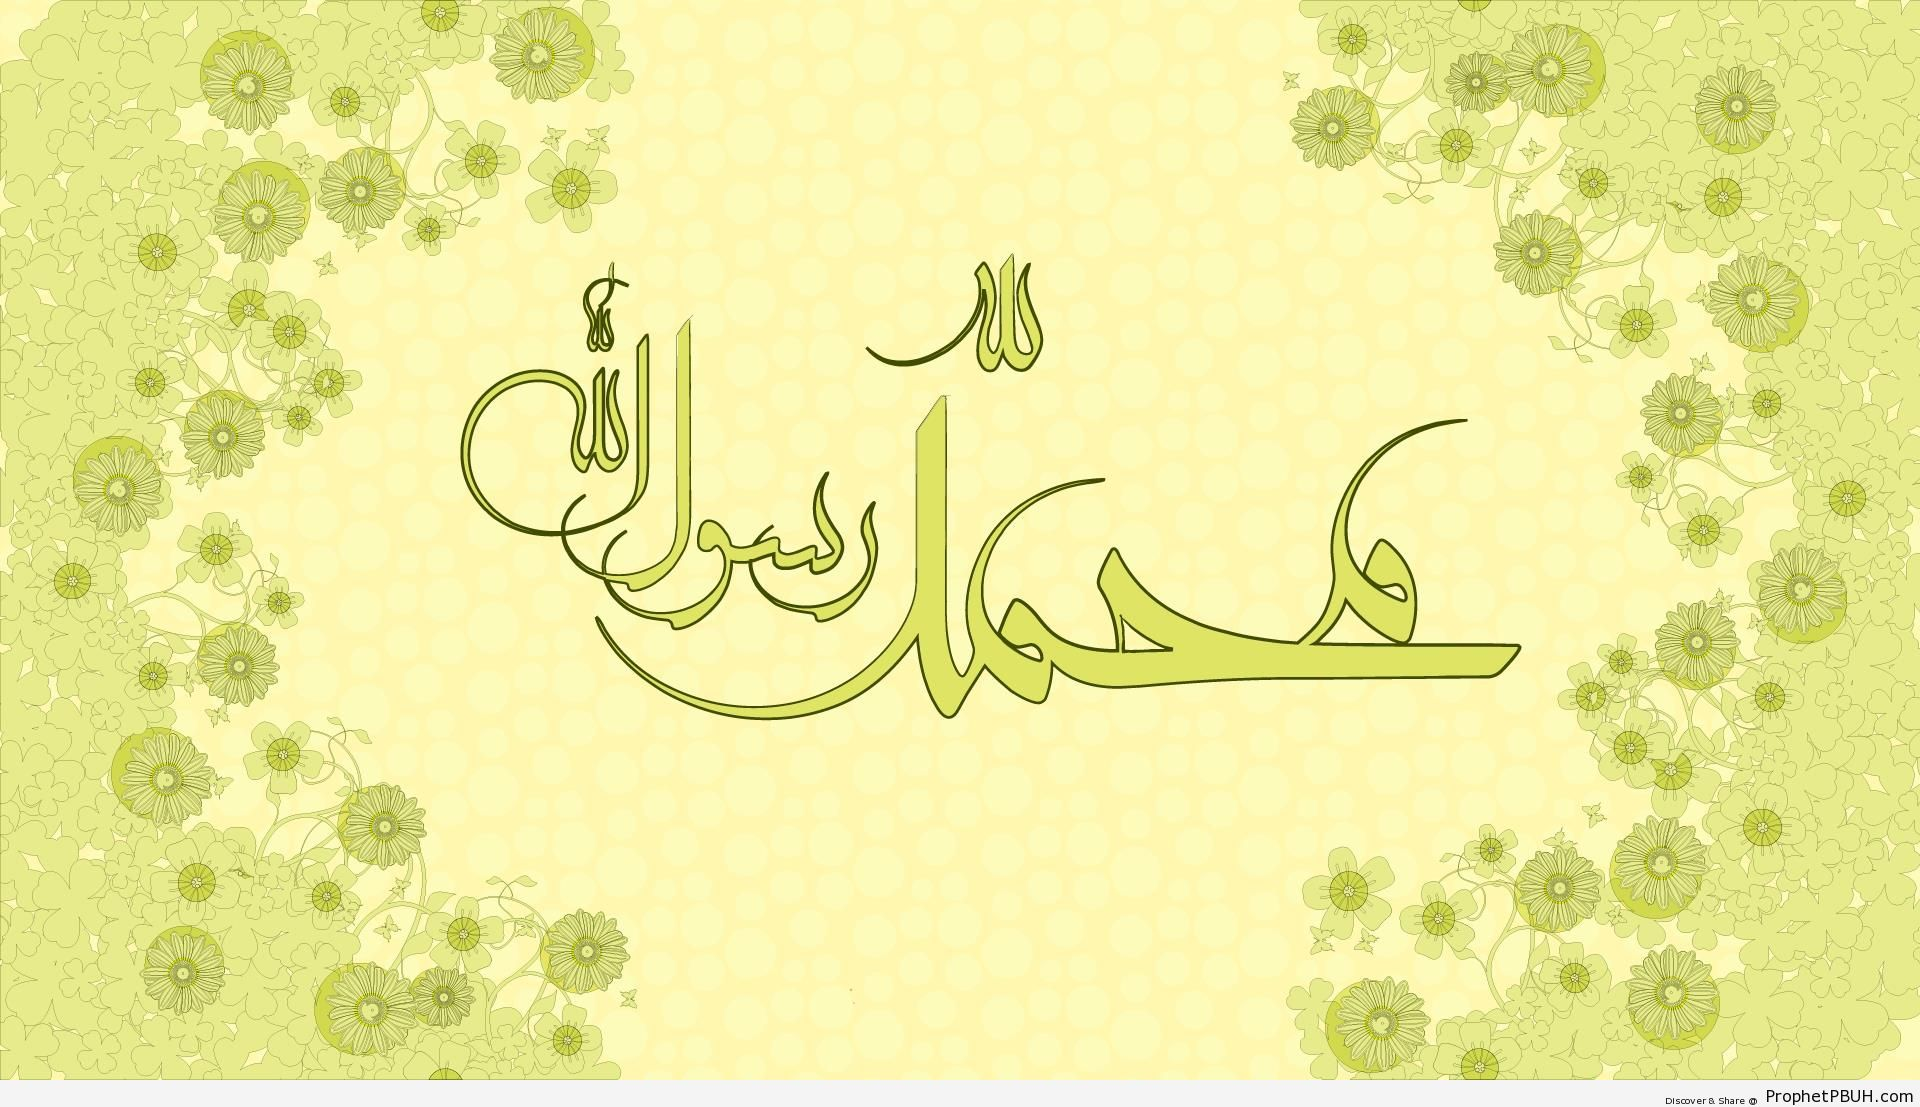 Muhammad is the Messenger of Allah (Quran Calligraphy) - Islamic Calligraphy and Typography